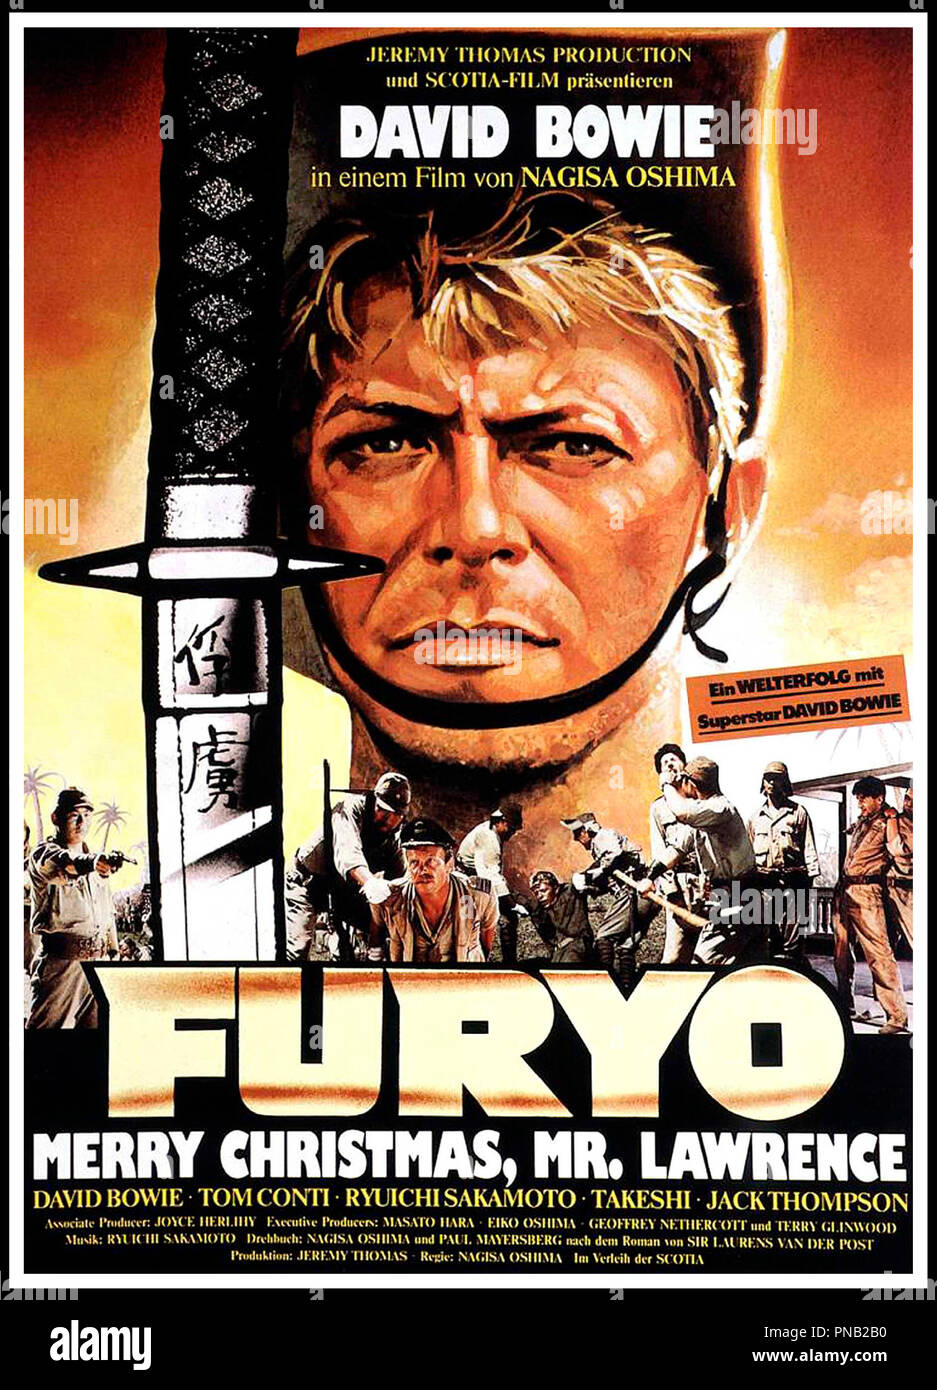 recorded pictures dr furyo merry christmas mr - Ryuichi Sakamoto Merry Christmas Mr Lawrence